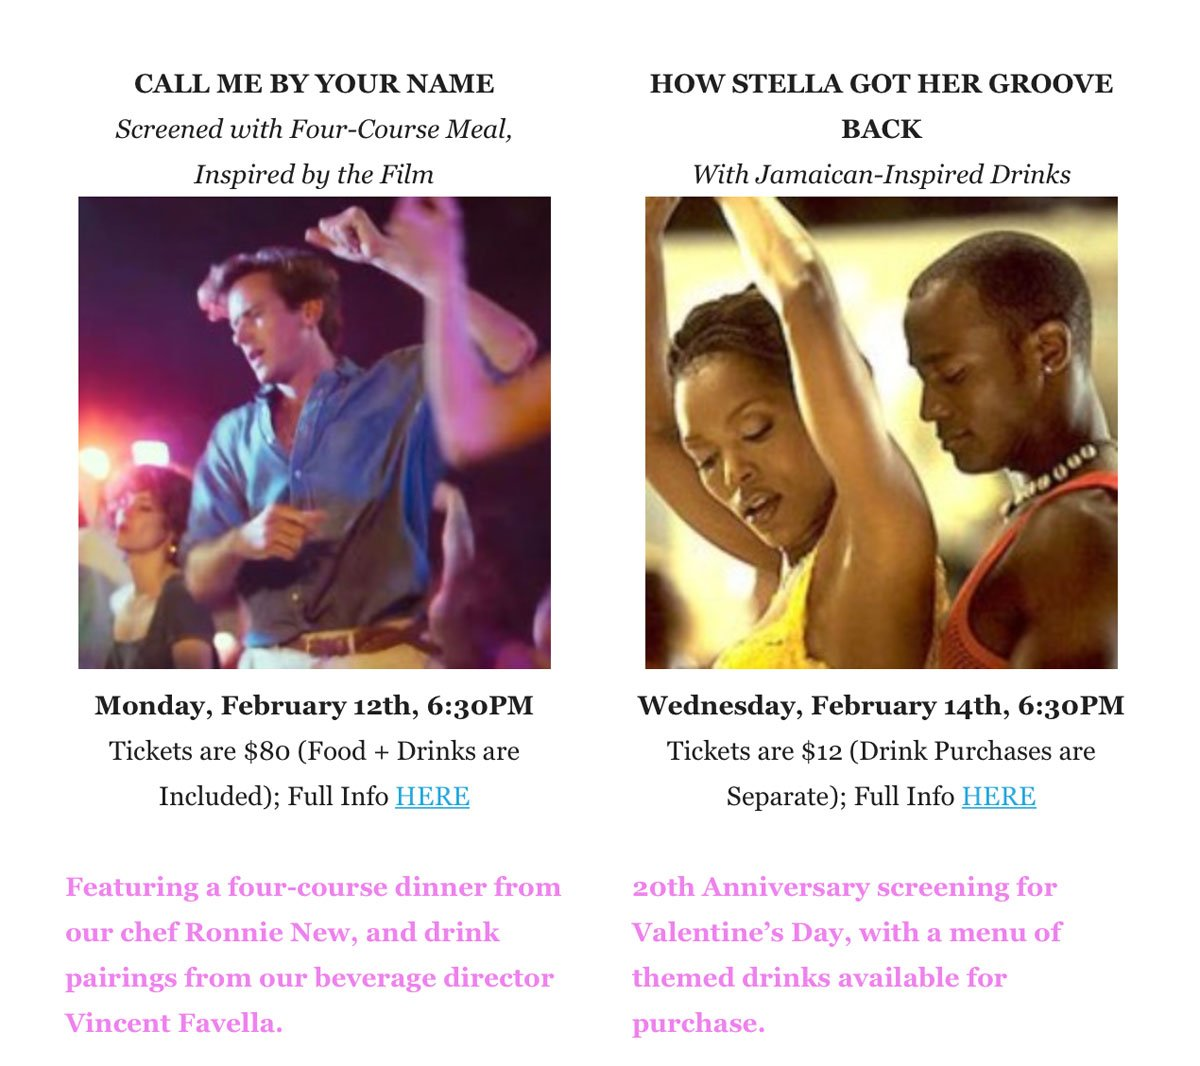 Alamo Call Me By Your Name and How Stella Got Her Groove Back Events